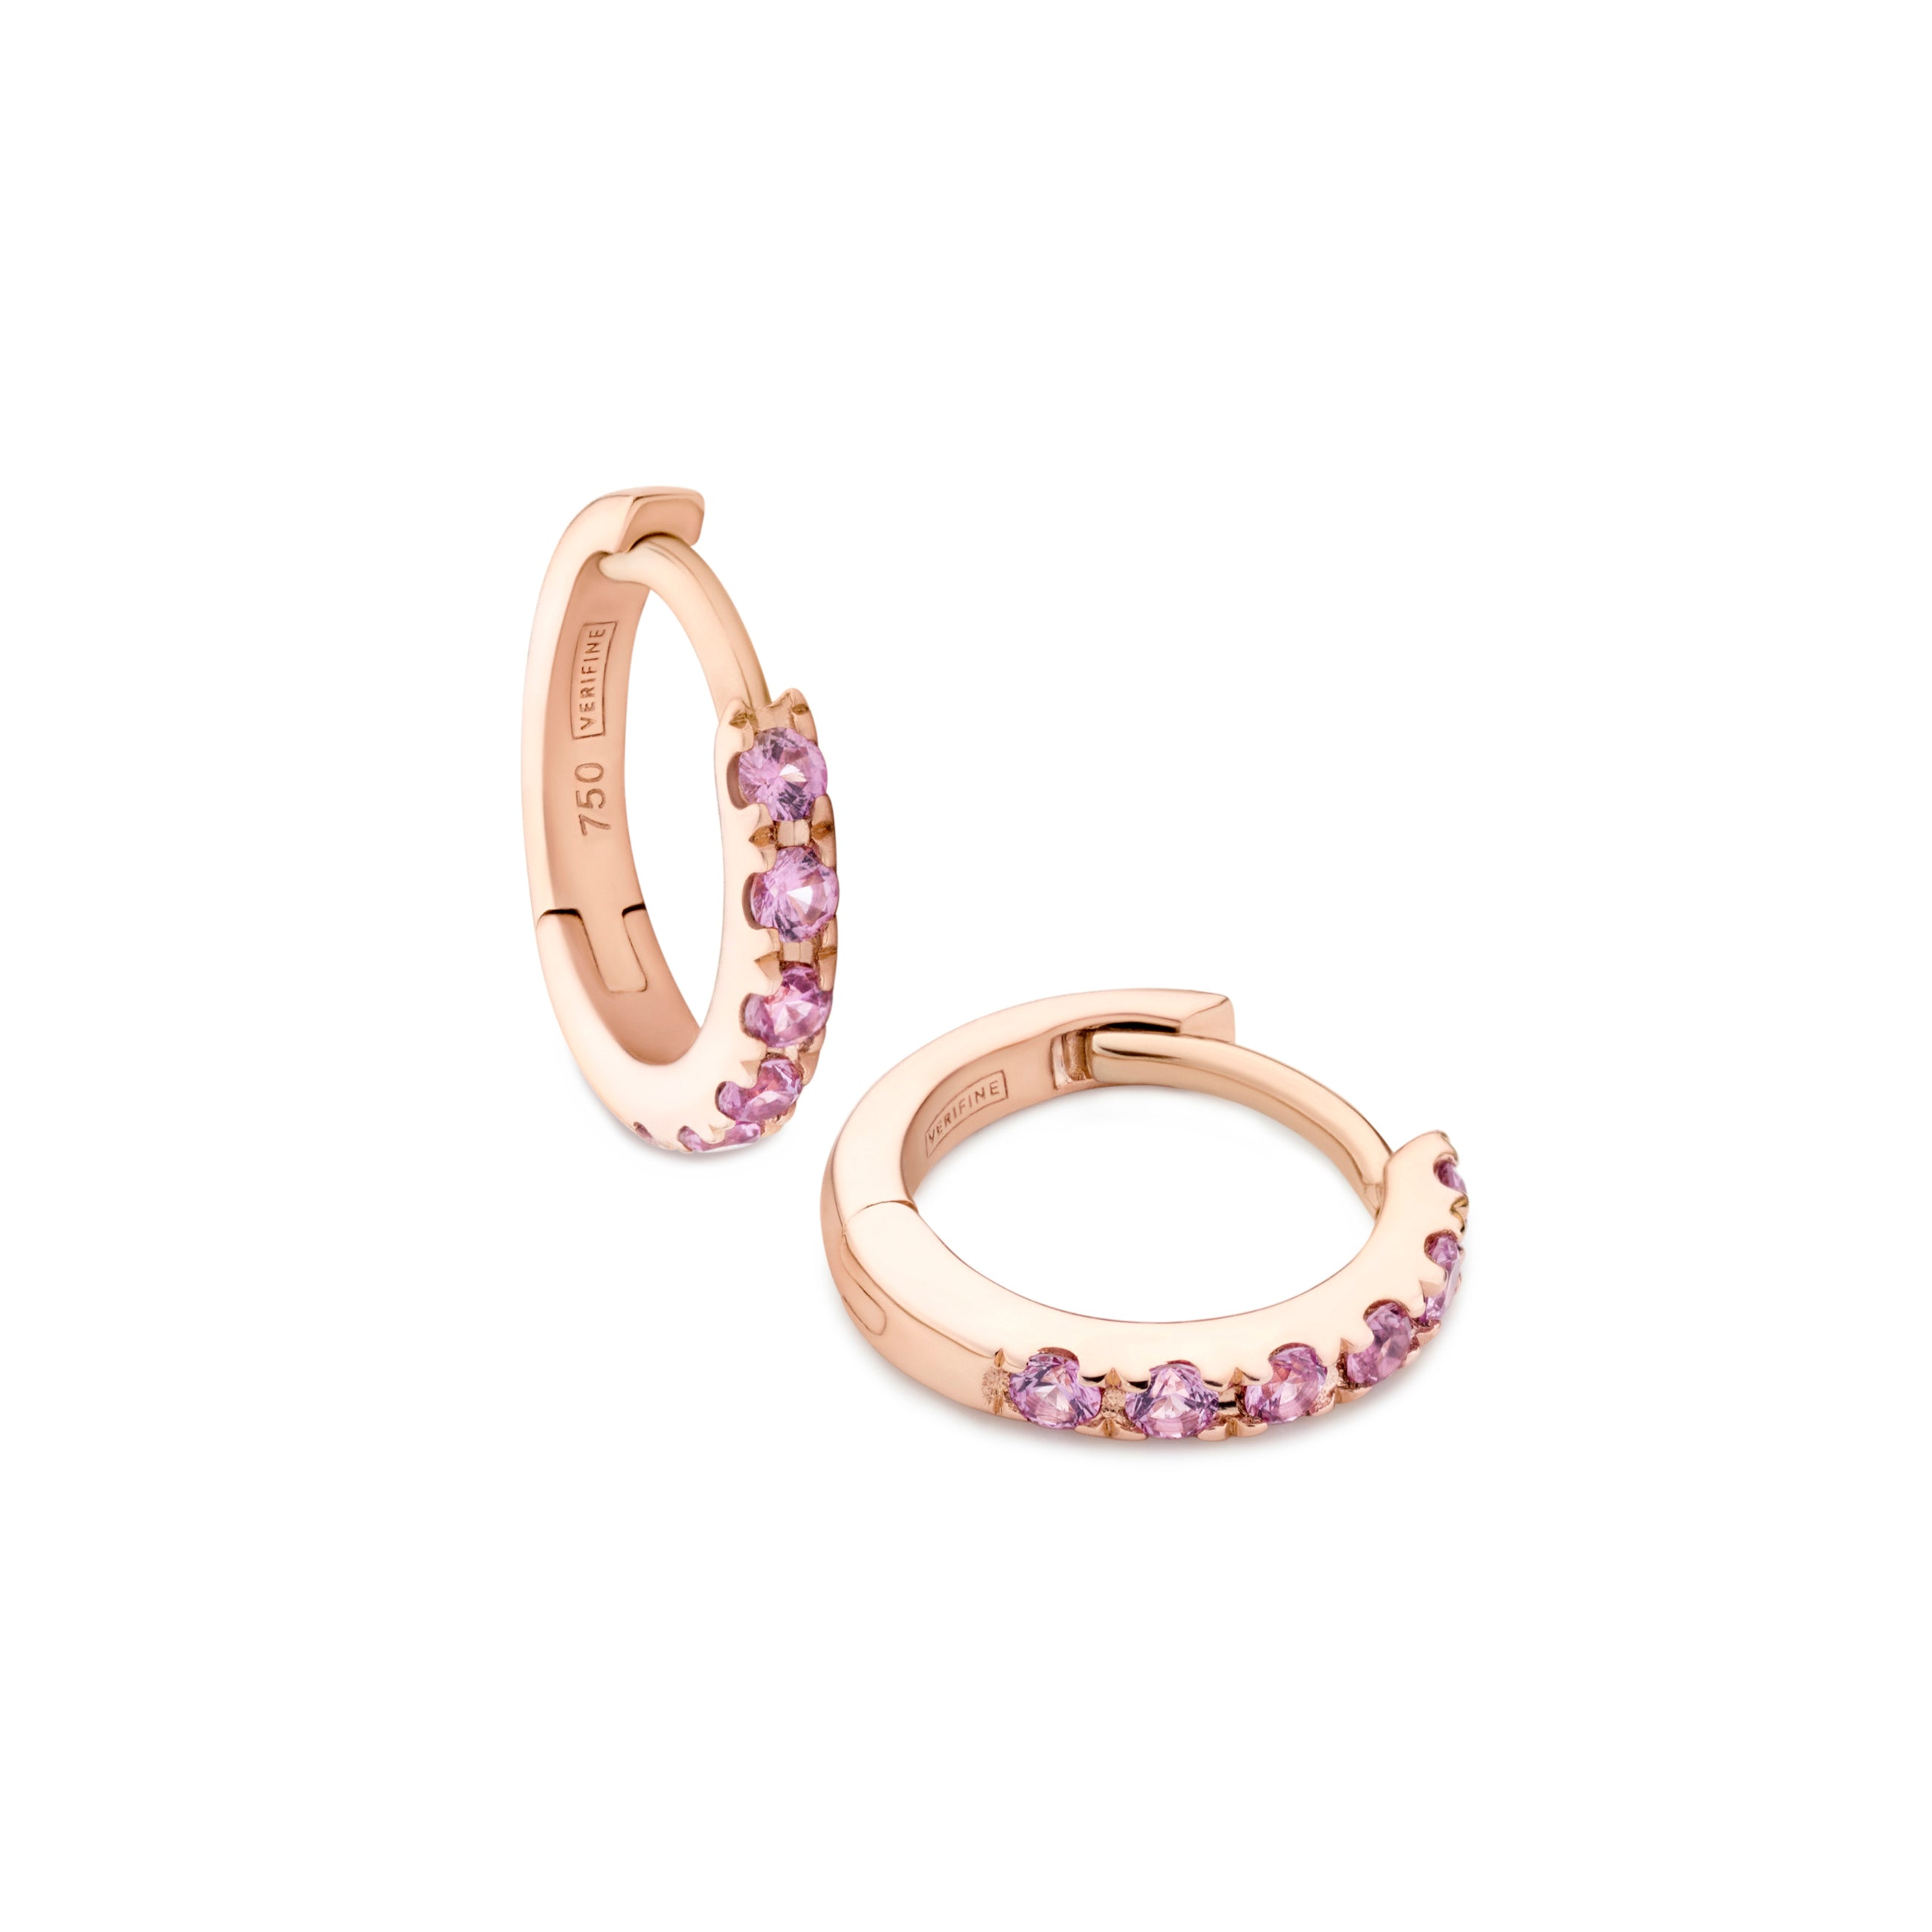 Pink sapphire huggie earrings in 18ct rose gold on white background